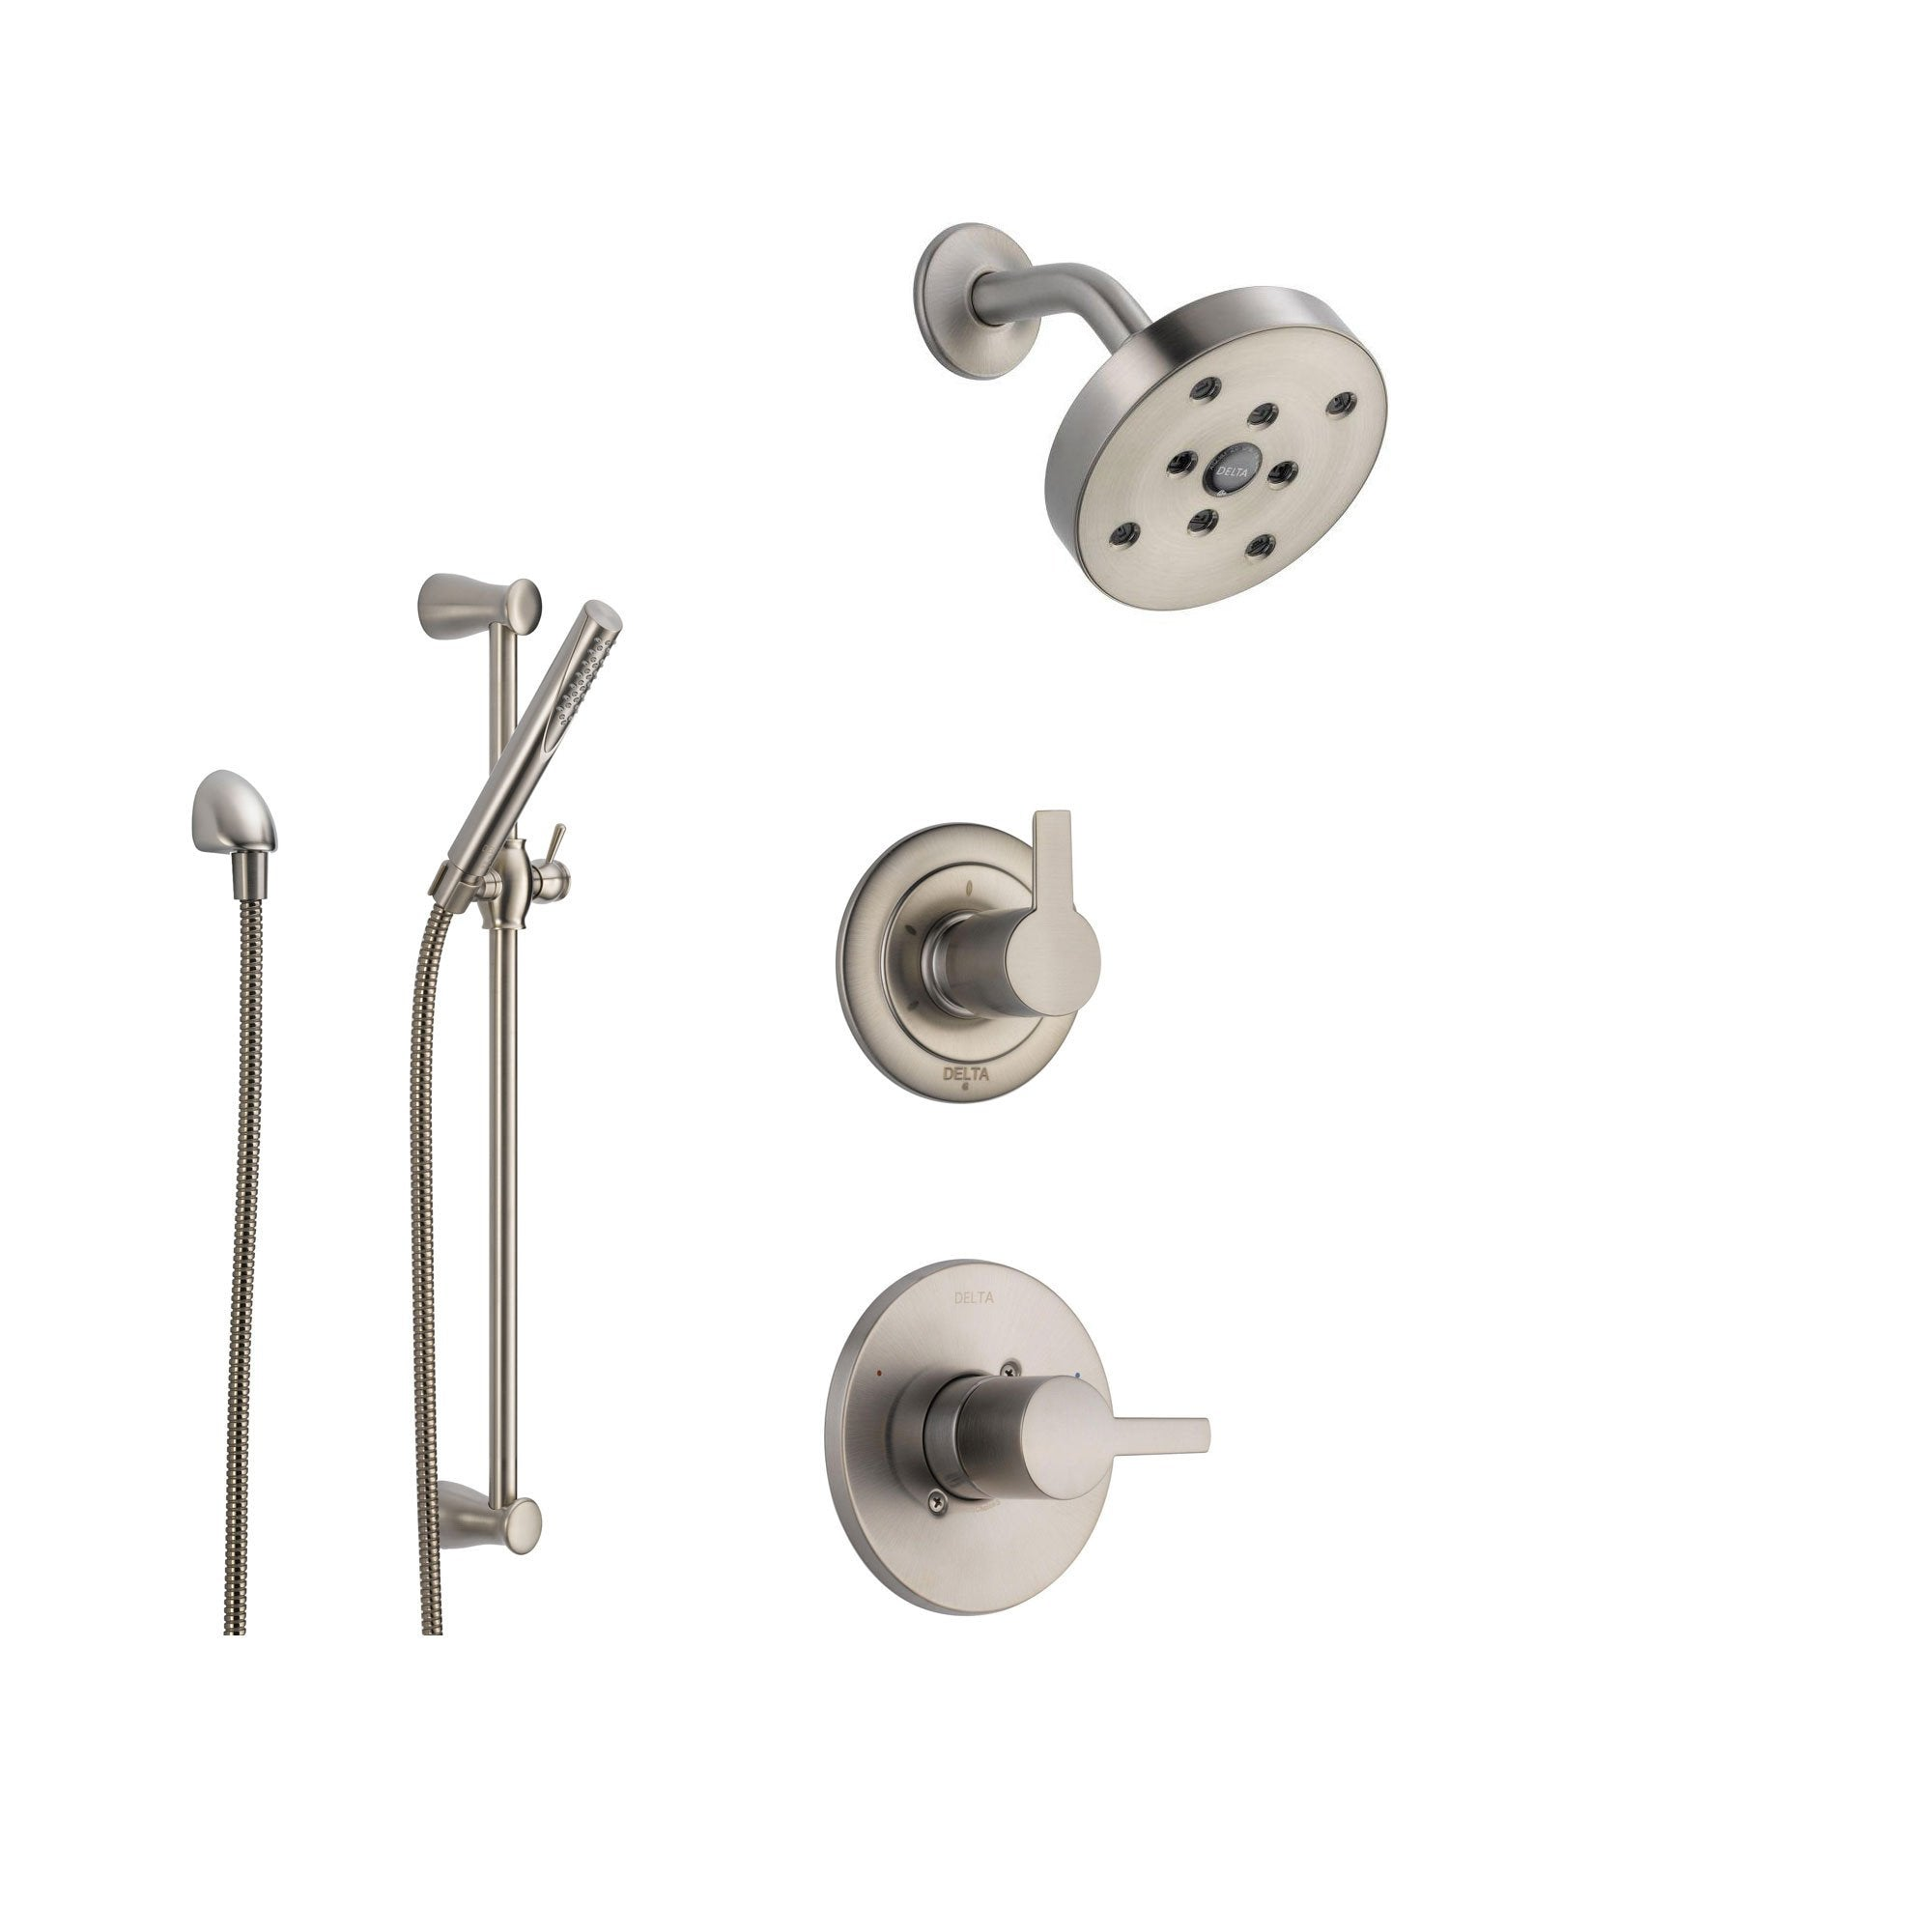 Delta Compel Stainless Steel Shower System with Normal Shower Handle, 3-setting Diverter, Modern Round Showerhead, and Handheld Shower Stick SS146184SS